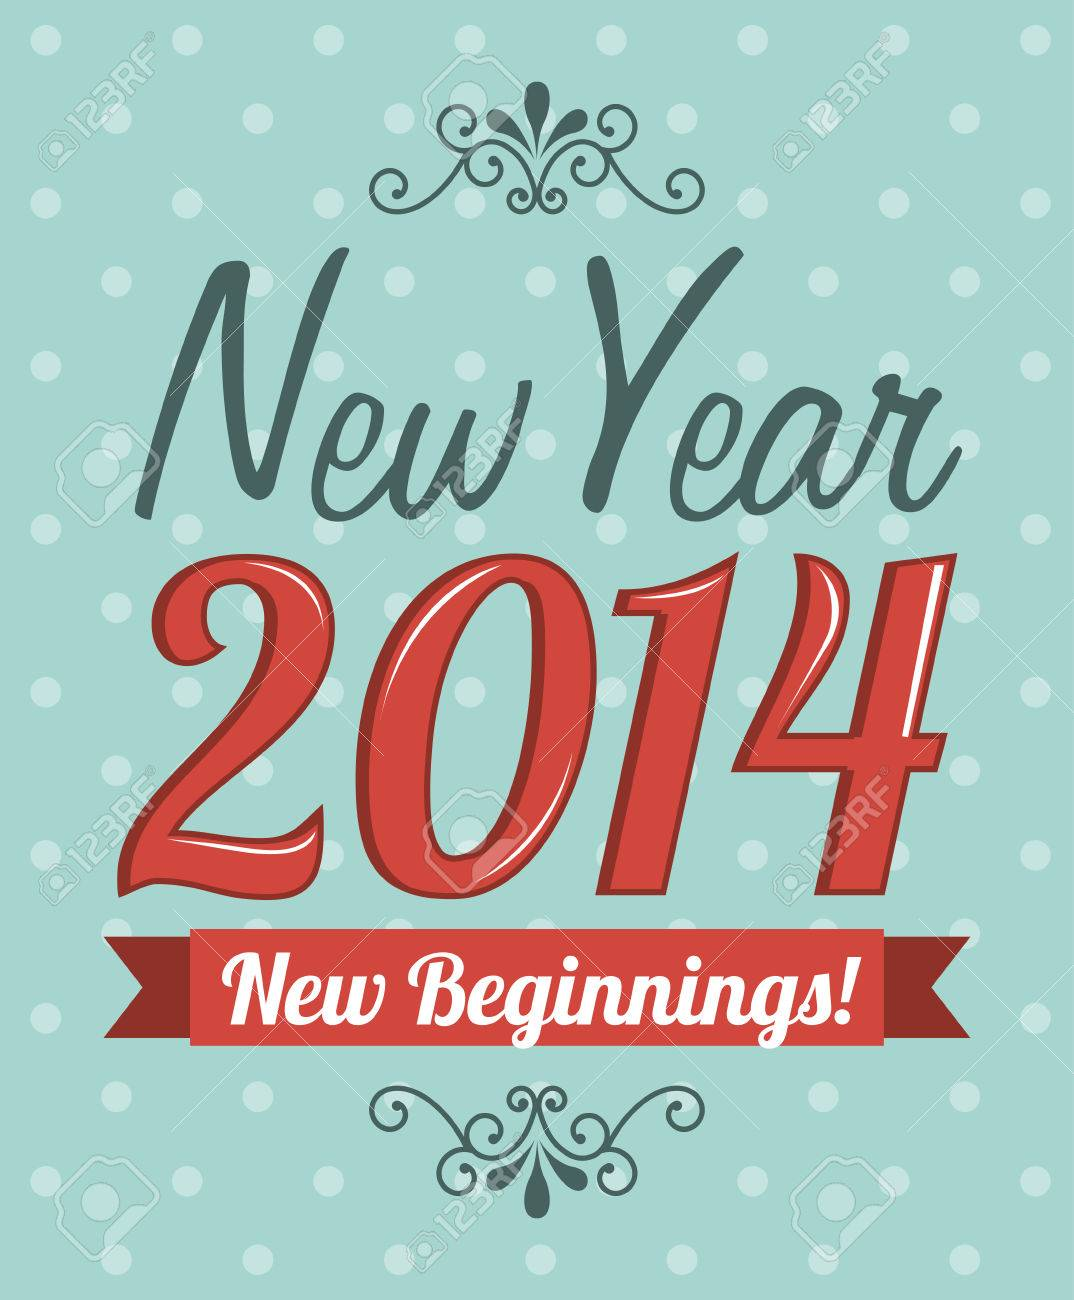 happy new year 2014 over dotted background  vector illustration Stock Vector - 22750736